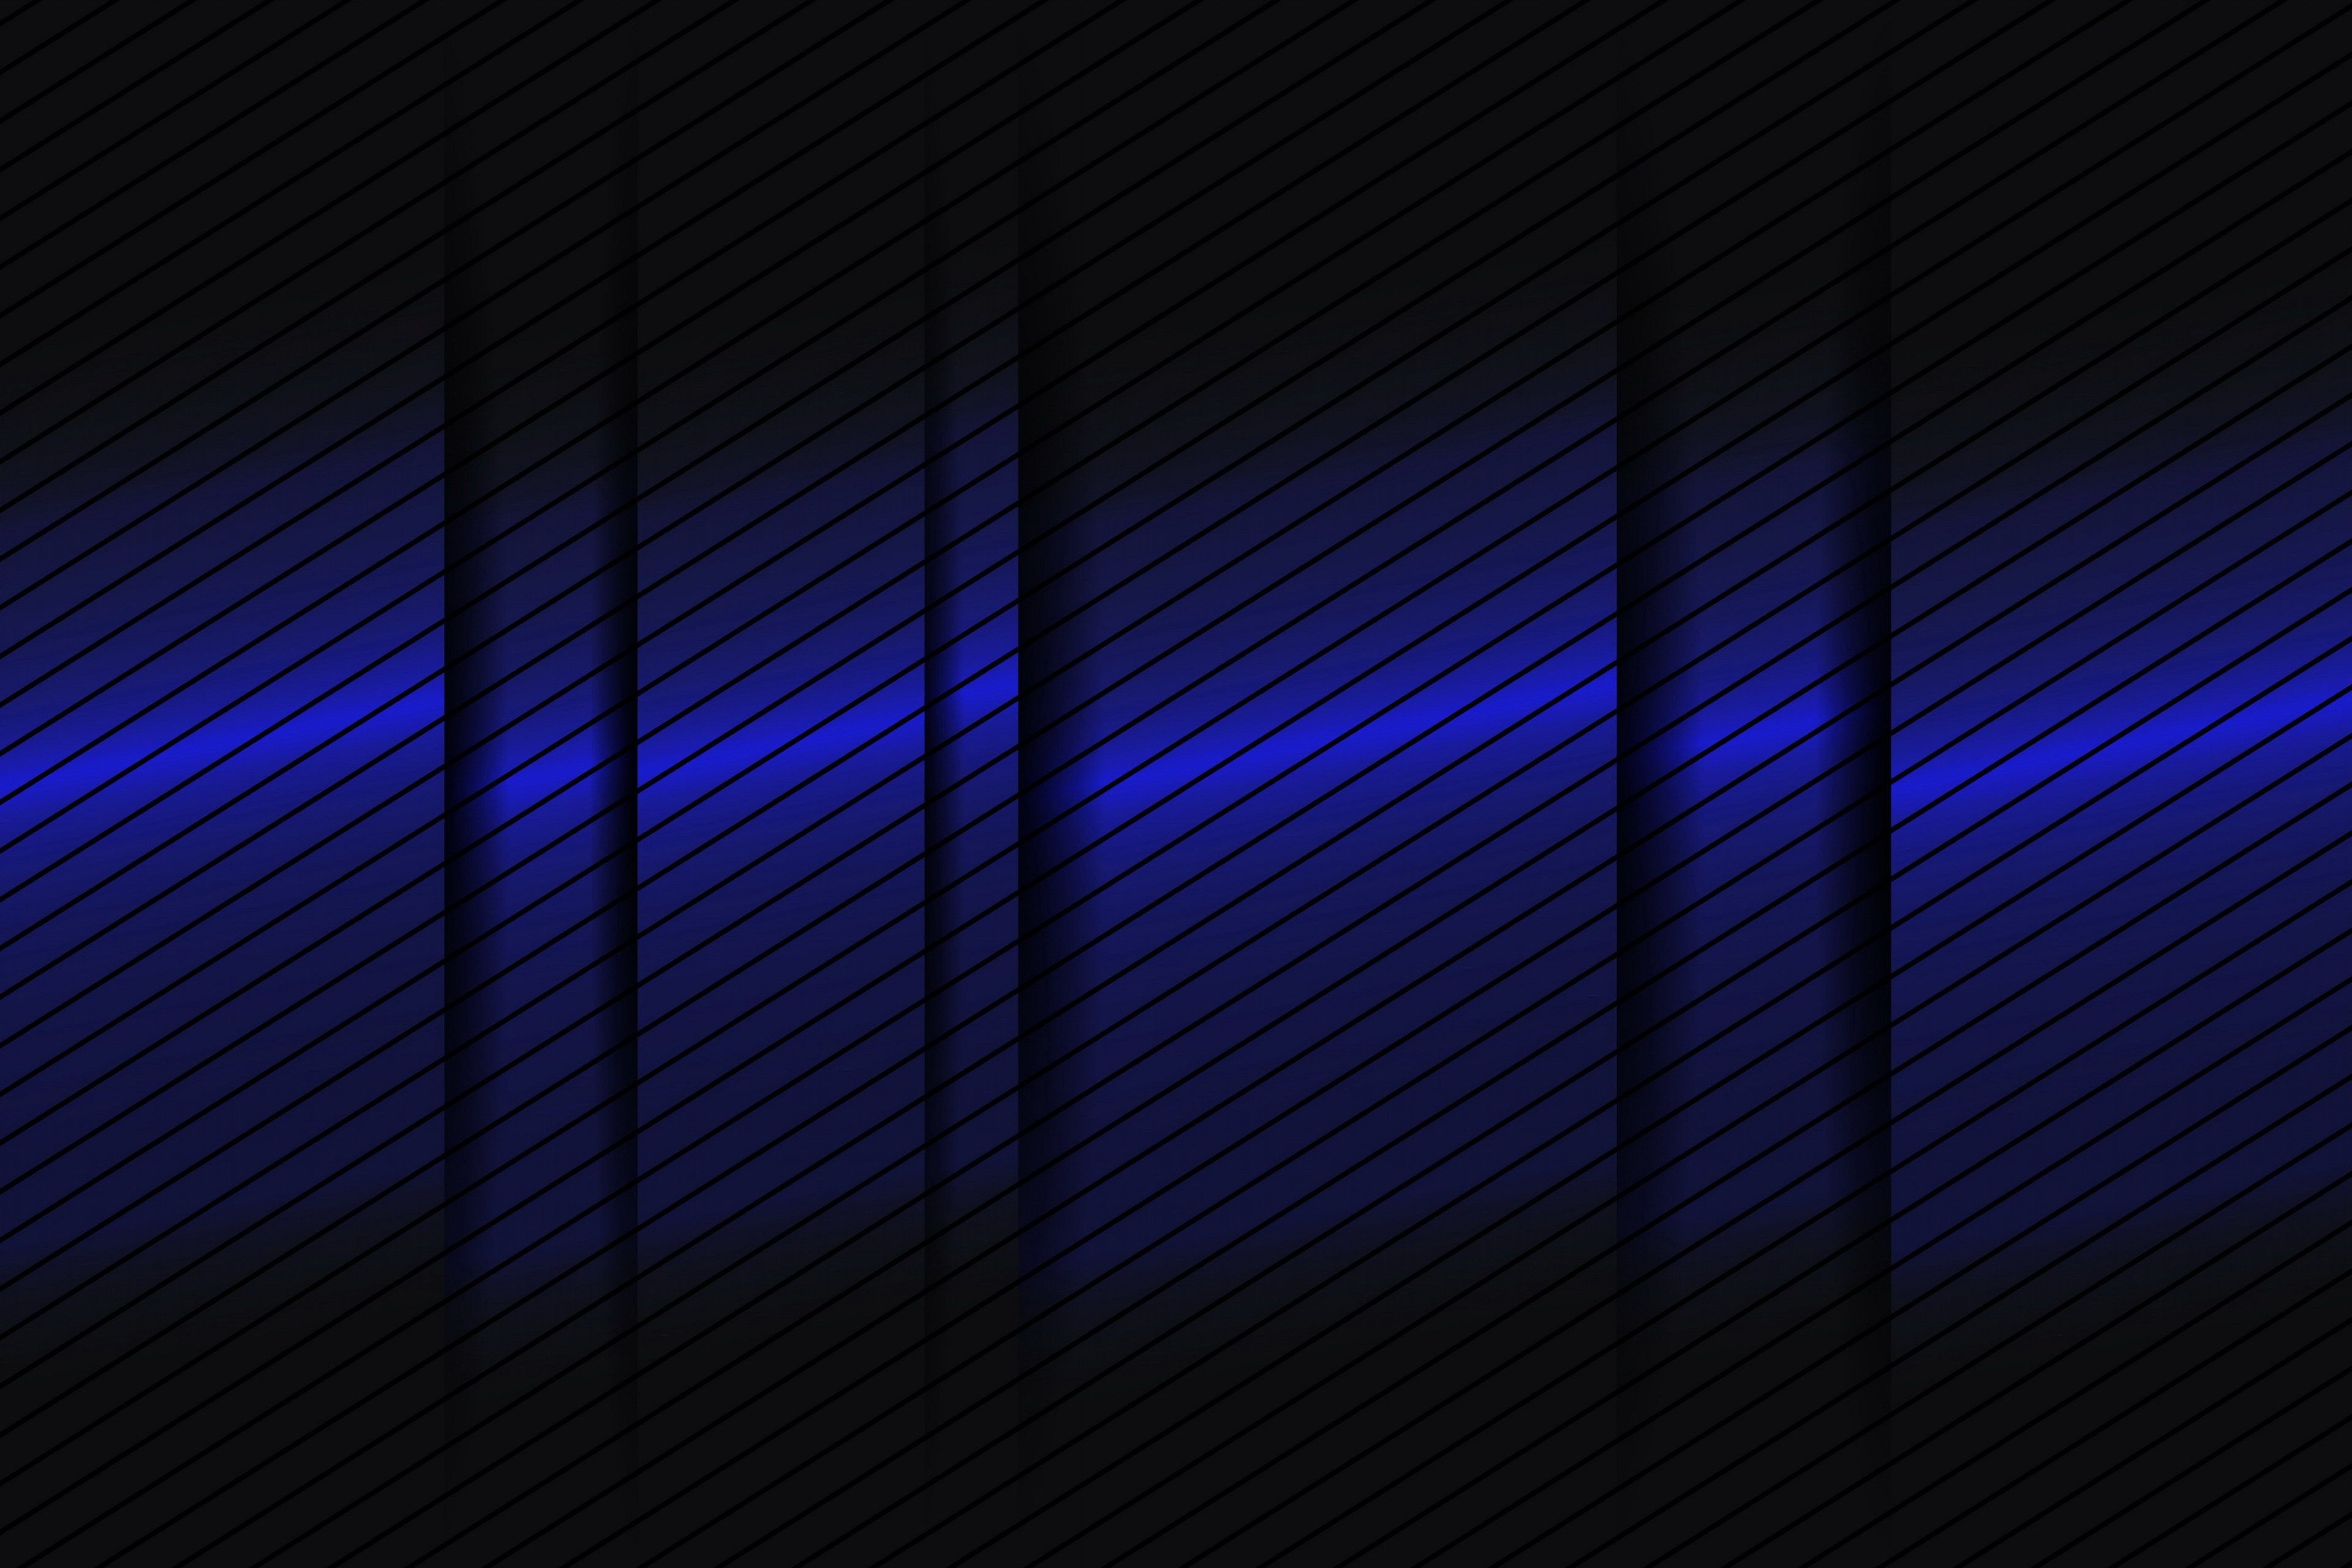 3840x2560 Abstract 4k Pictures Desktop Blue Background Wallpapers Black And Blue Wallpaper Blue Abstract 4k wallpaper dark blue